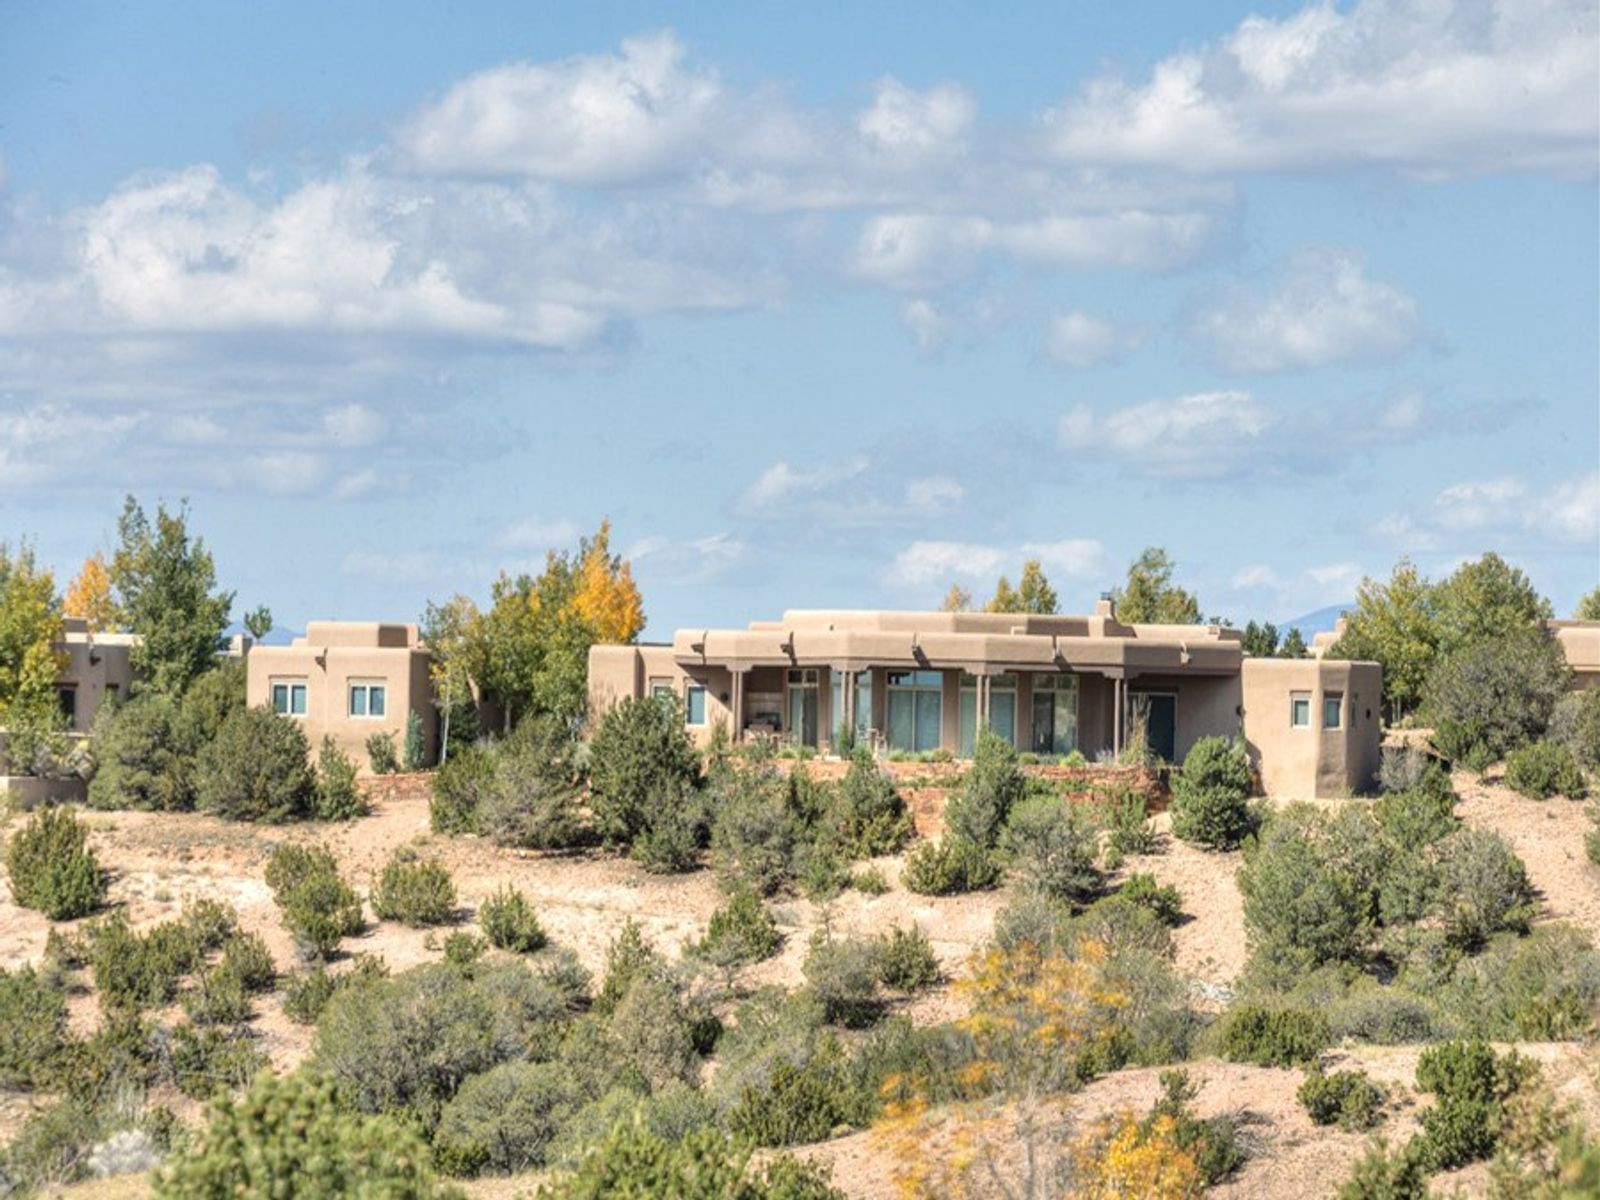 417 Los Altos Way, Santa Fe NM Single Family Home - Santa Fe Real Estate